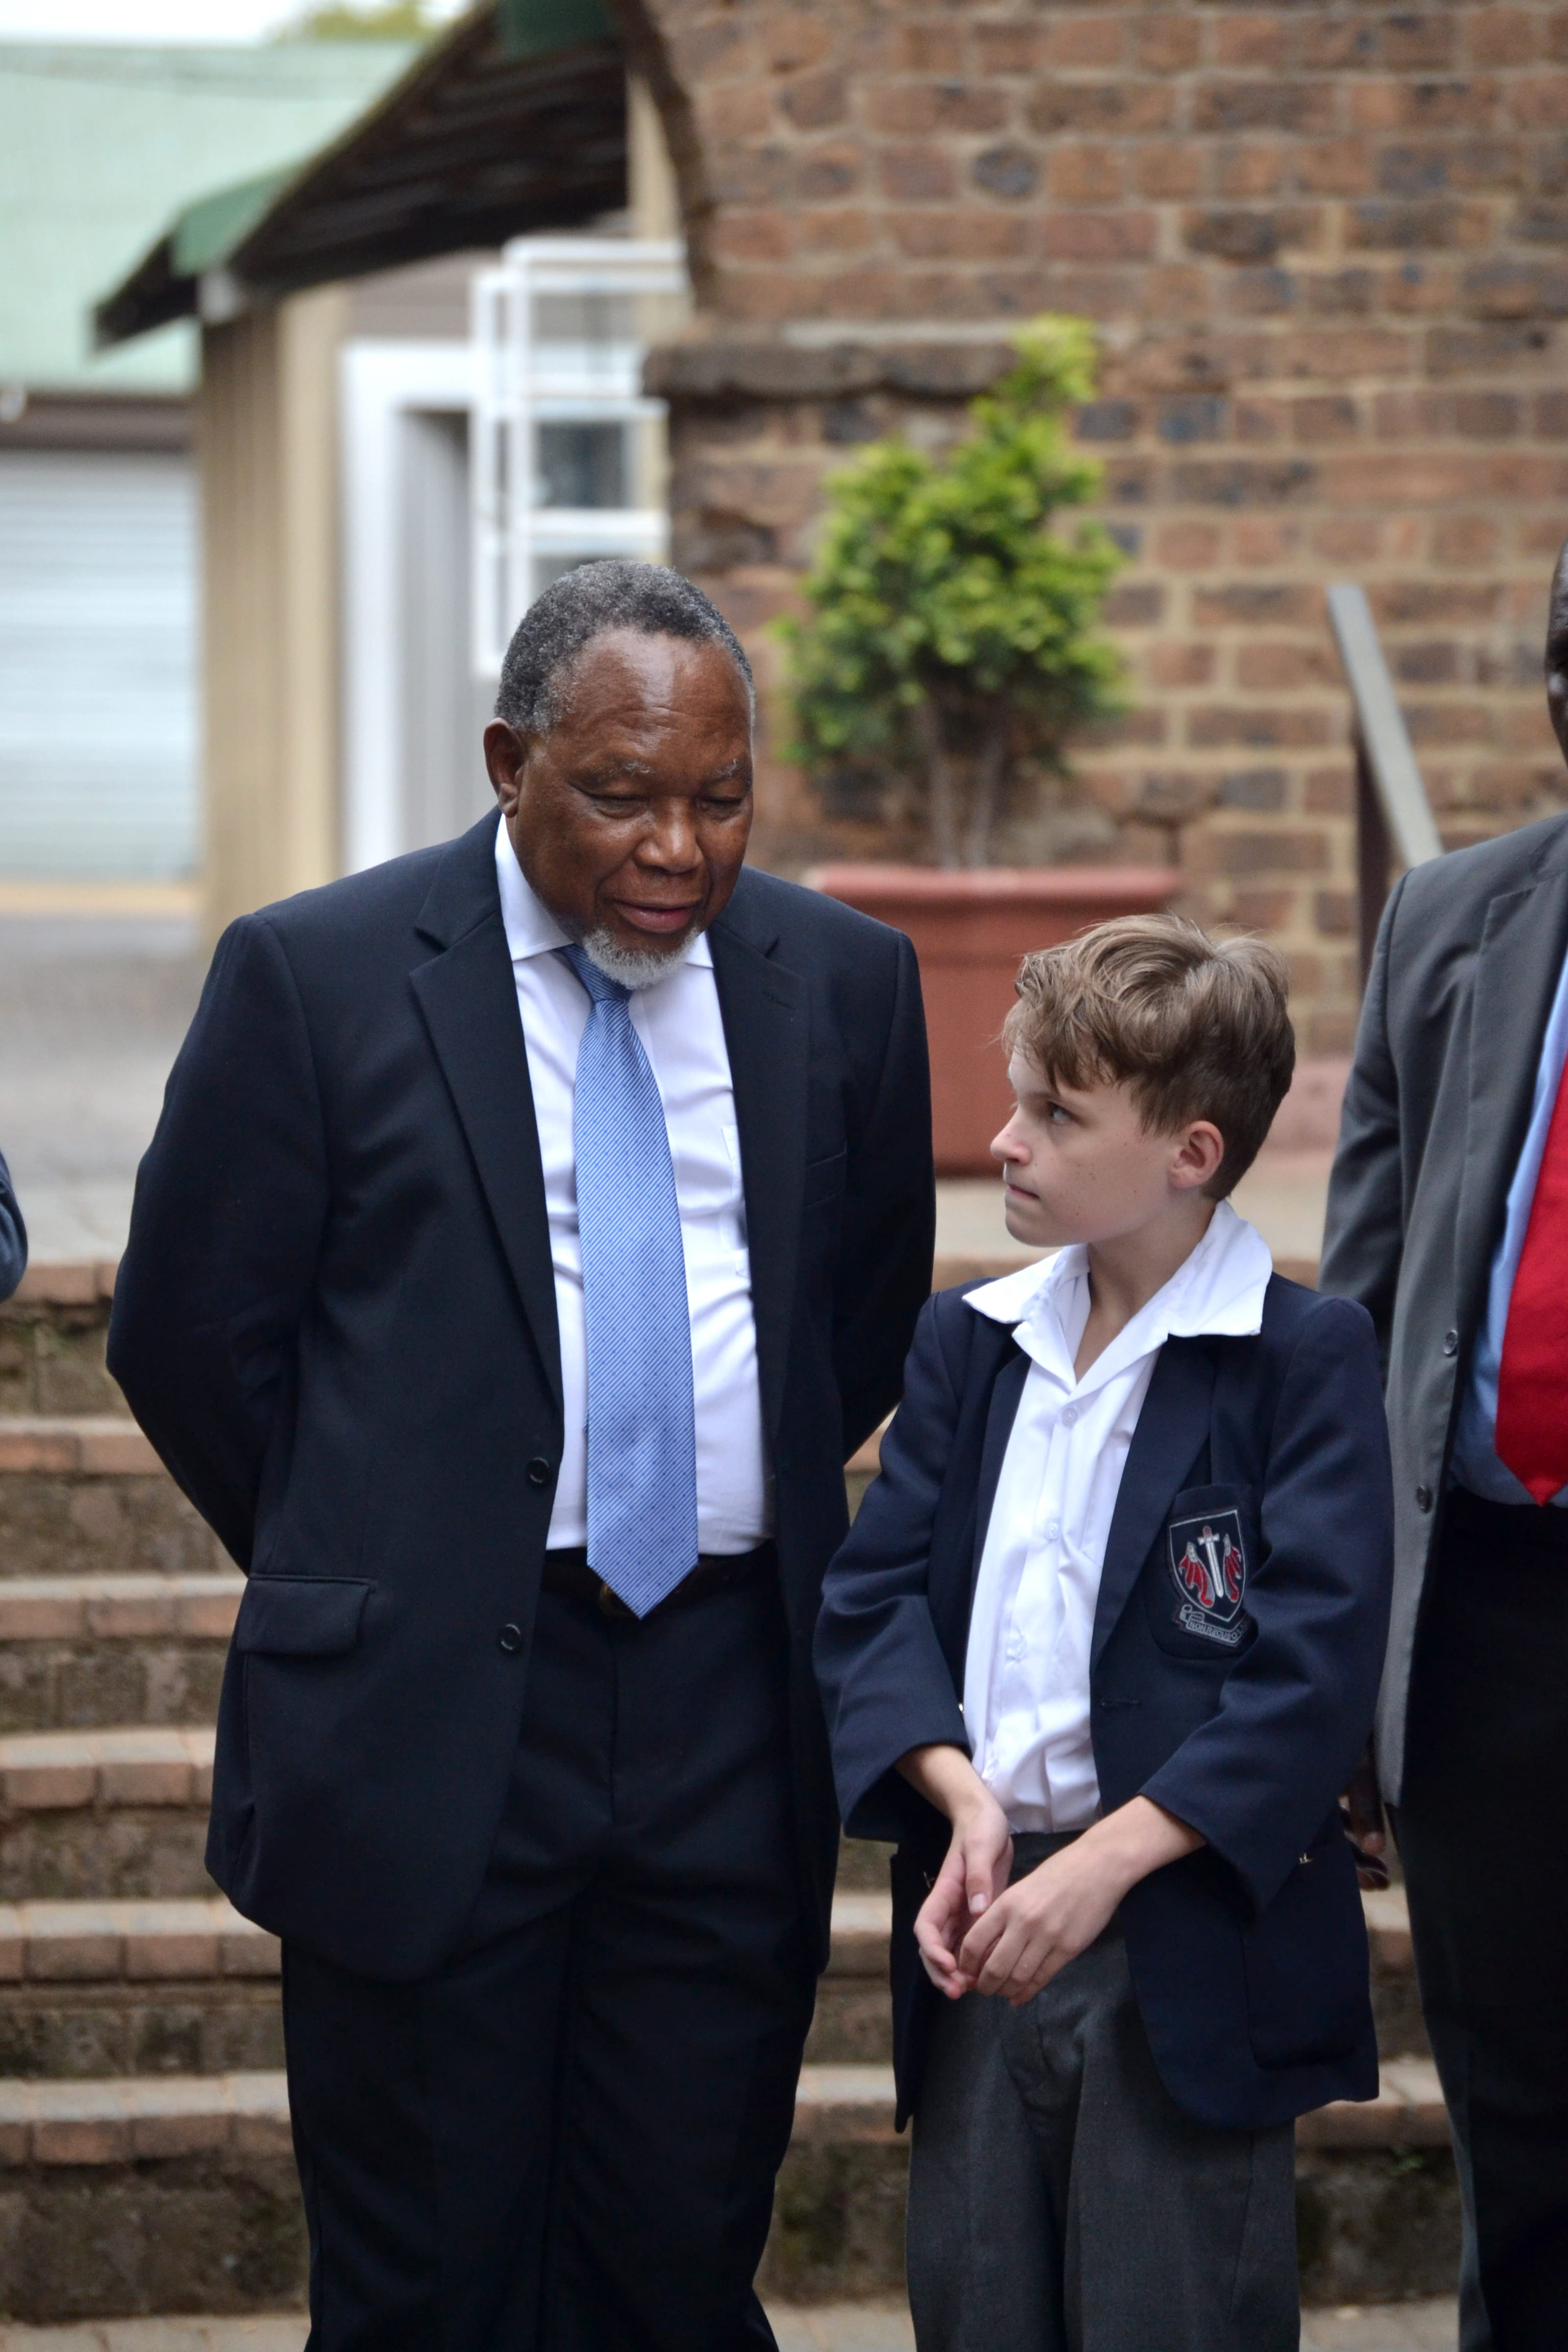 president-kgalema-motlanthe-answering-questions-at-st-martins